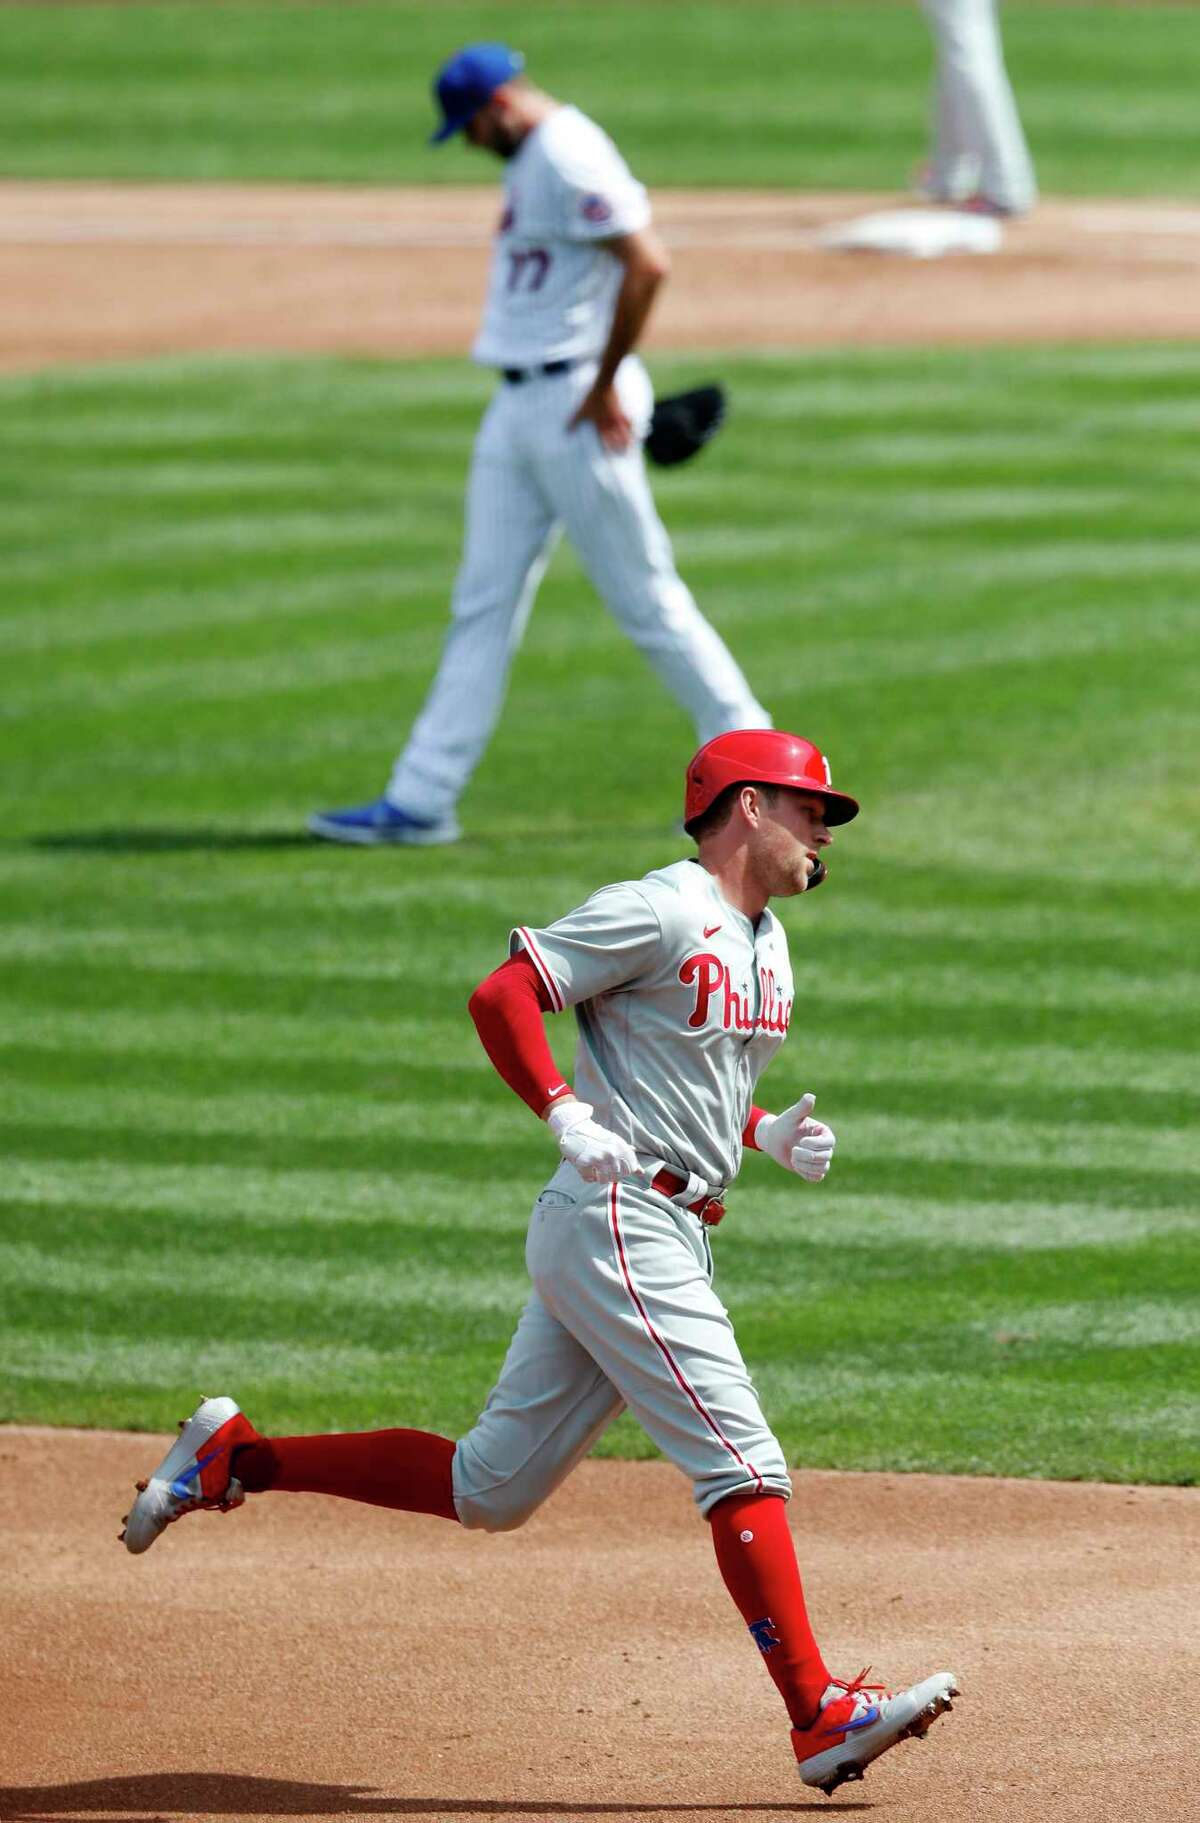 NEW YORK, NEW YORK - SEPTEMBER 07: Rhys Hoskins #17 of the Philadelphia Phillies runs the bases after his second-inning two-run home run against David Peterson #77 of the New York Mets at Citi Field on September 07, 2020 in New York City. (Photo by Jim McIsaac/Getty Images)